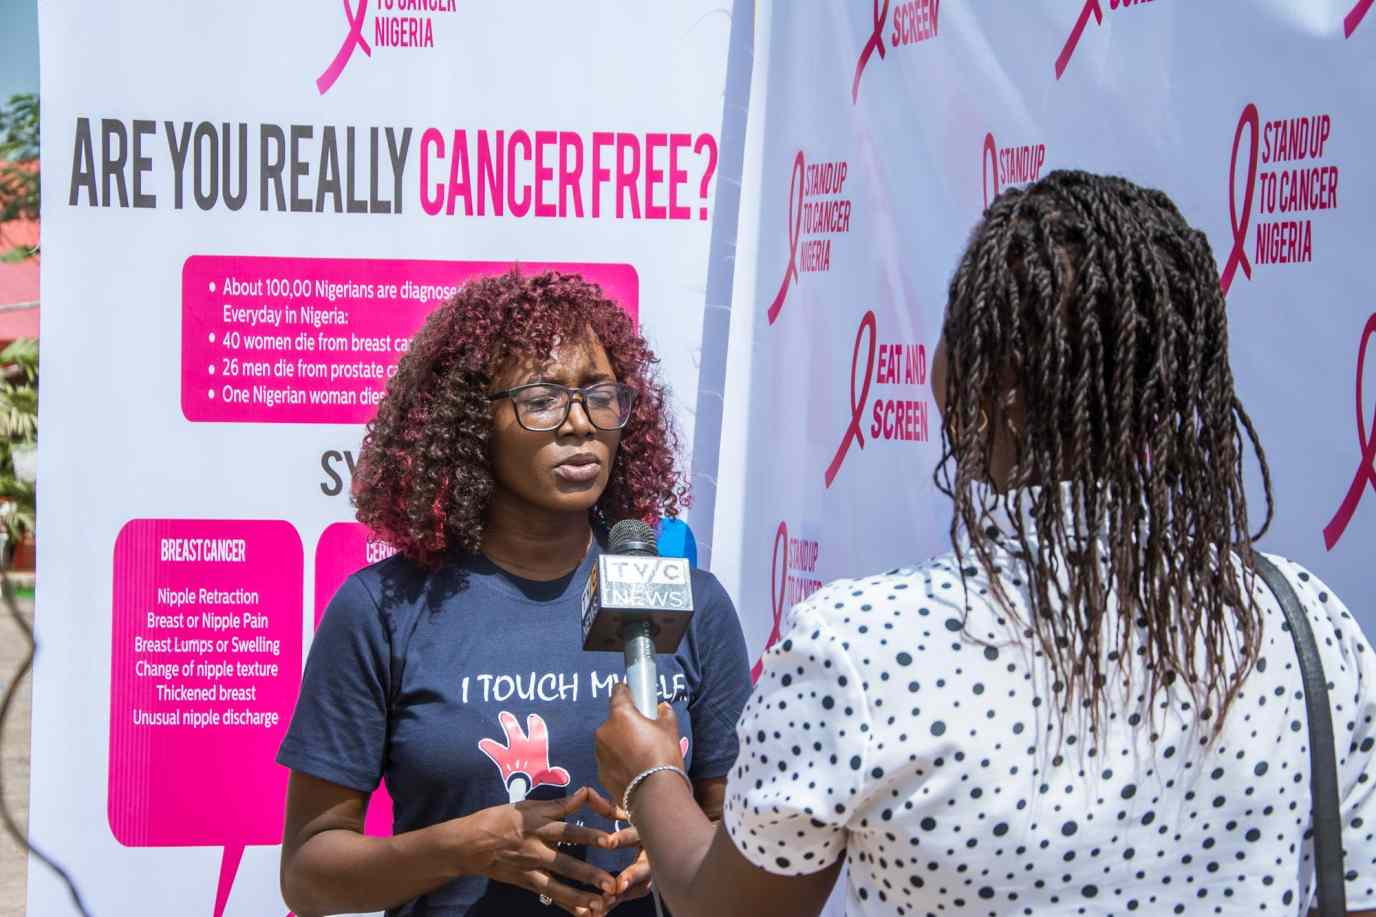 Dr Abiodun talking to the press about the event